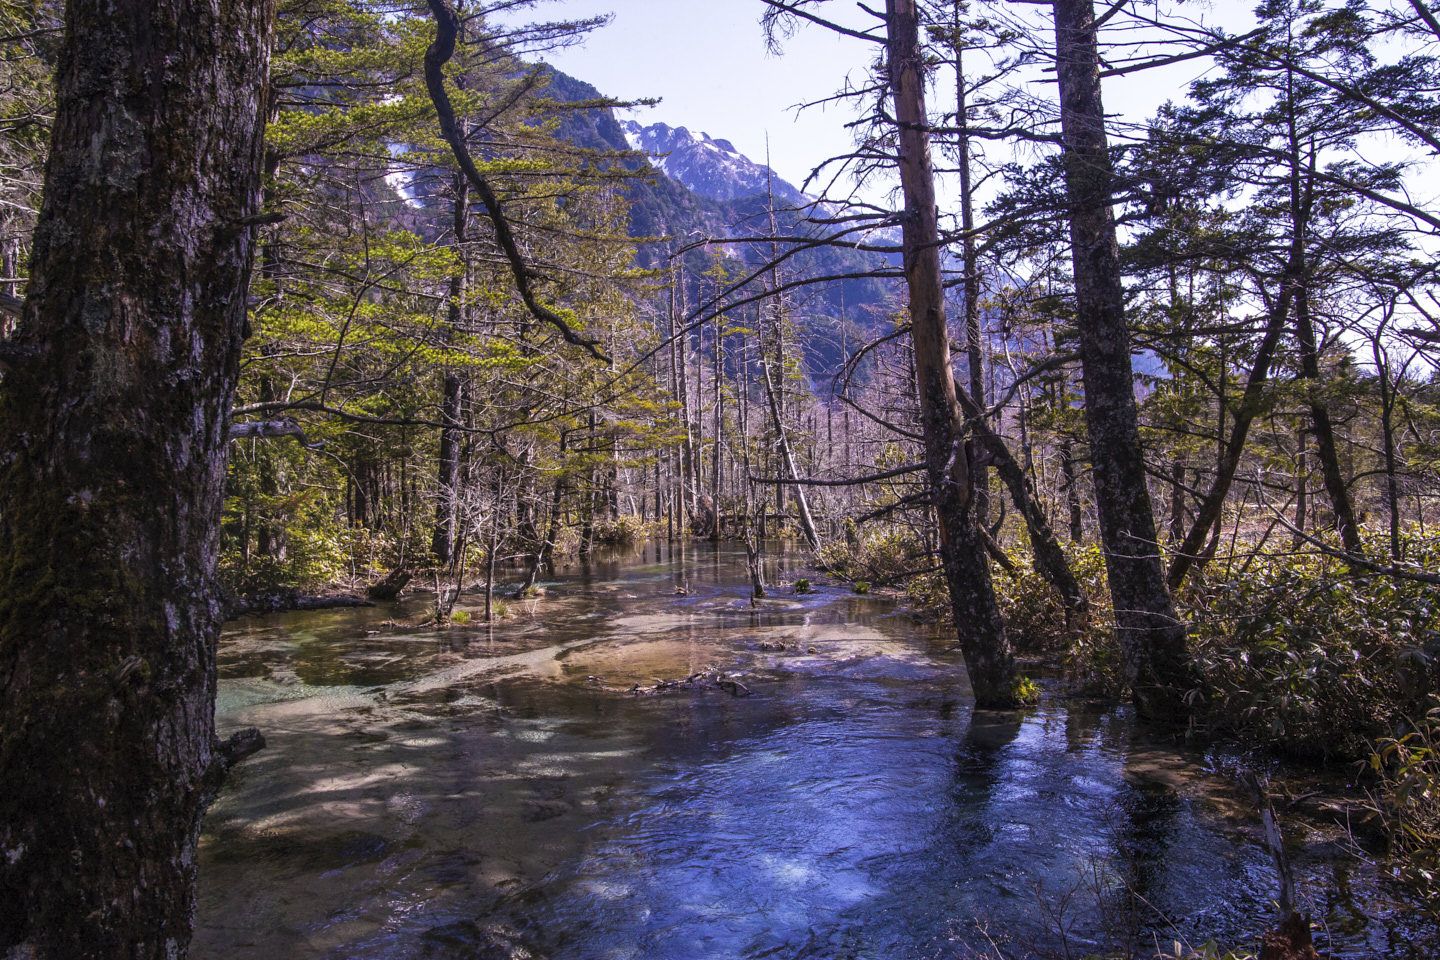 A swamp-like drowned forest river of Kamikochi